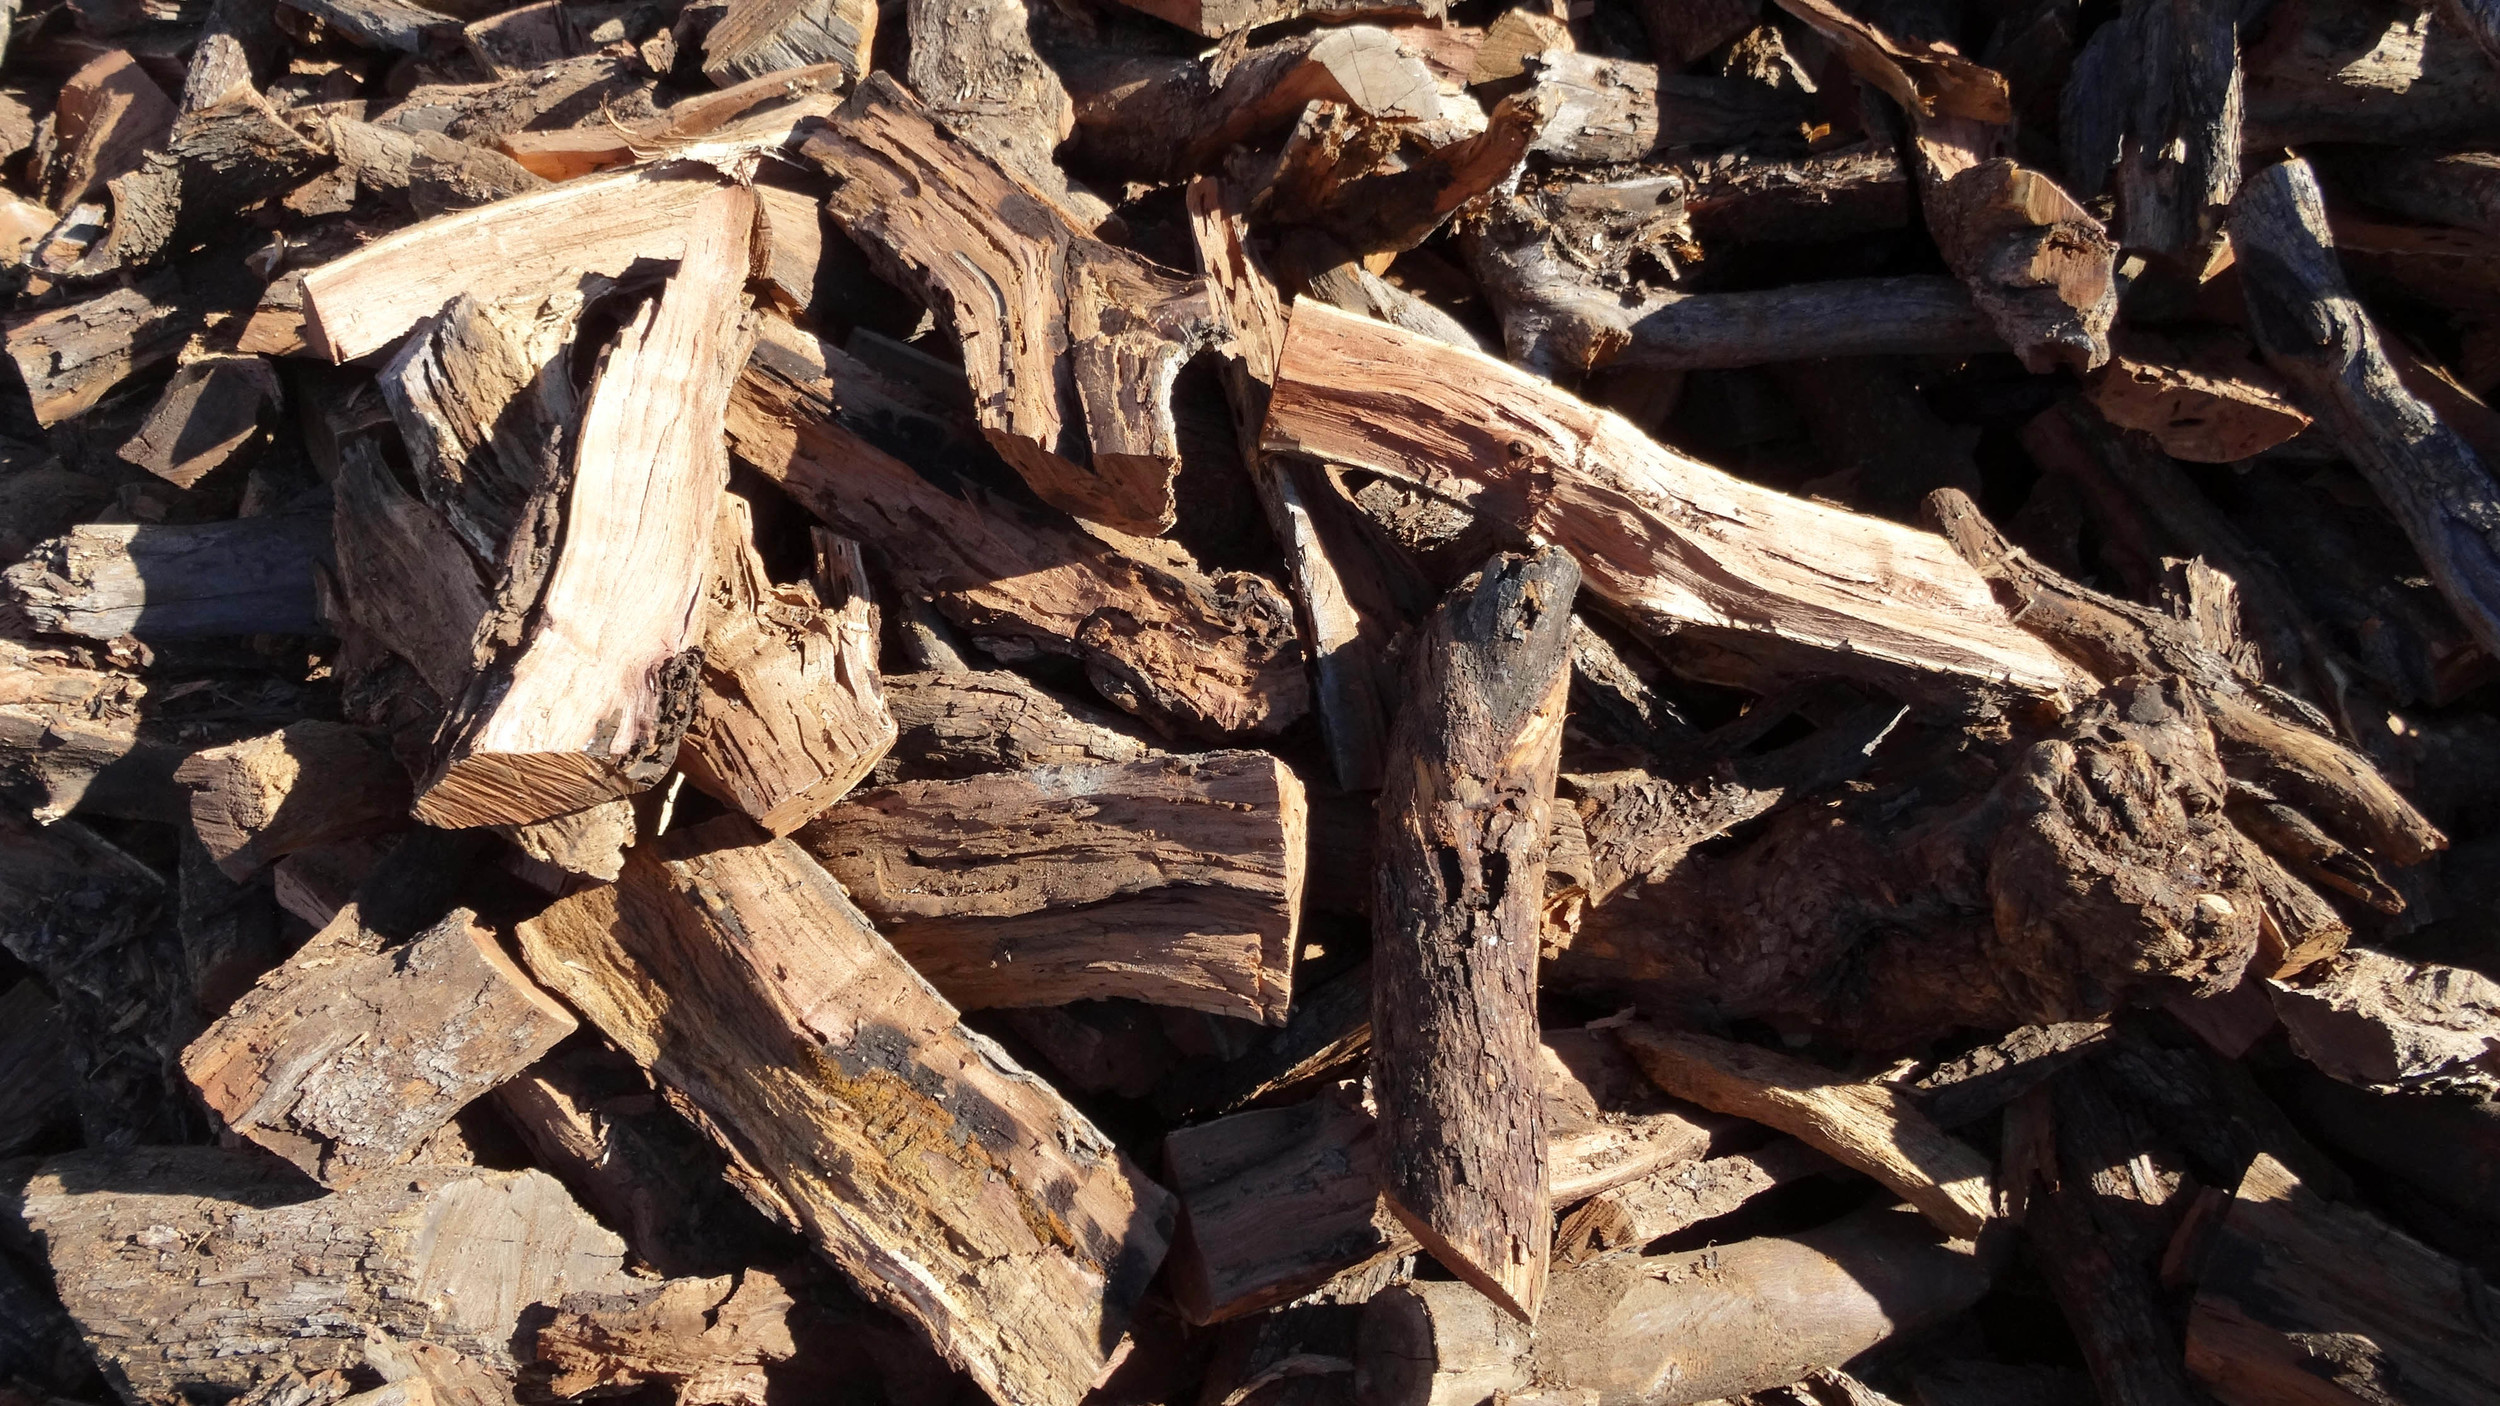 A very hard firewood. Great for both cooking and heating.